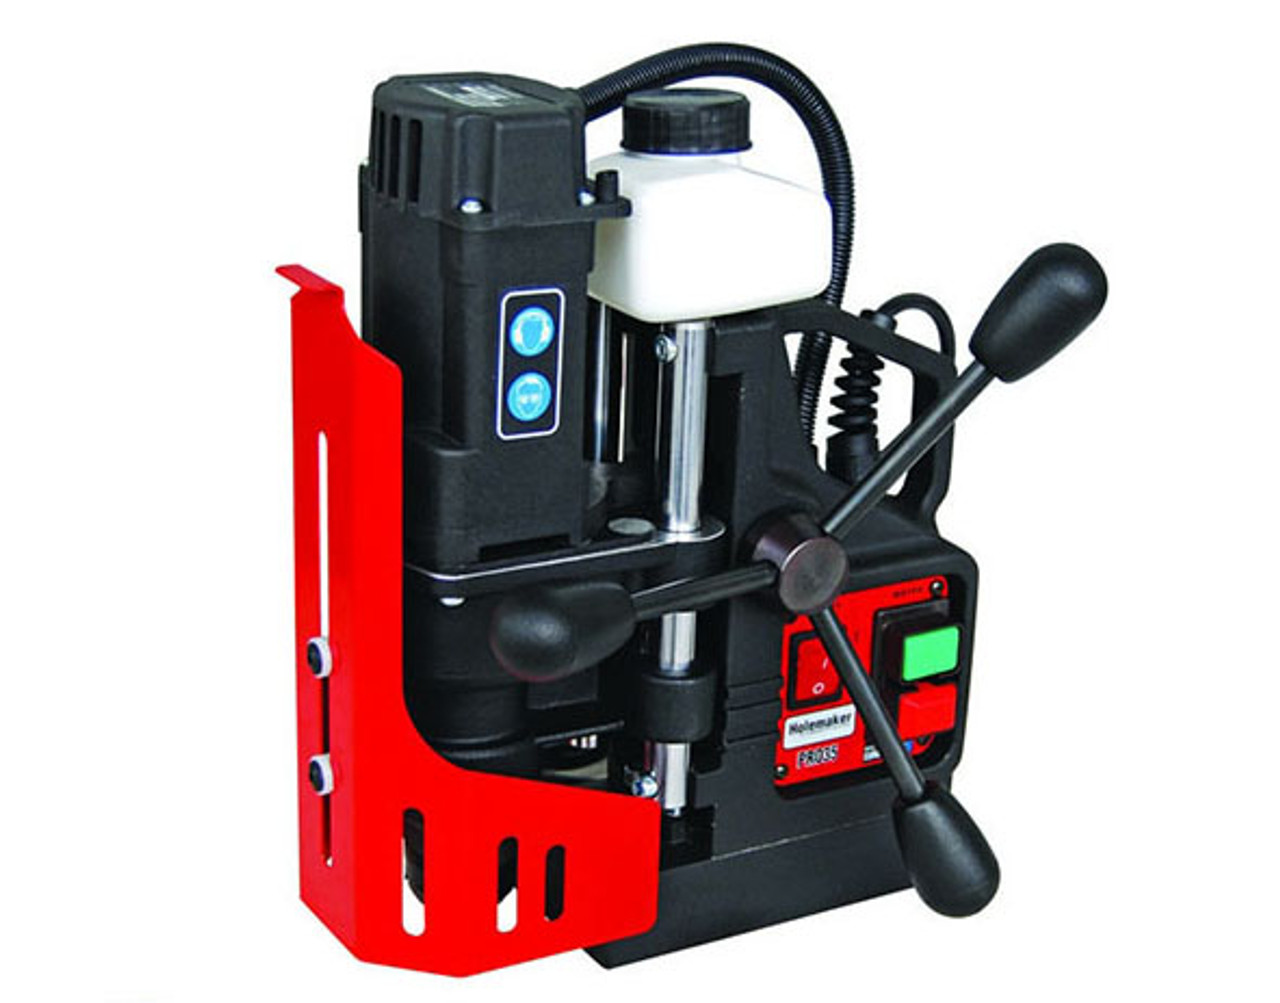 Holemaker HMPRO35 Magnetic Base Drill - 35mm Capacity